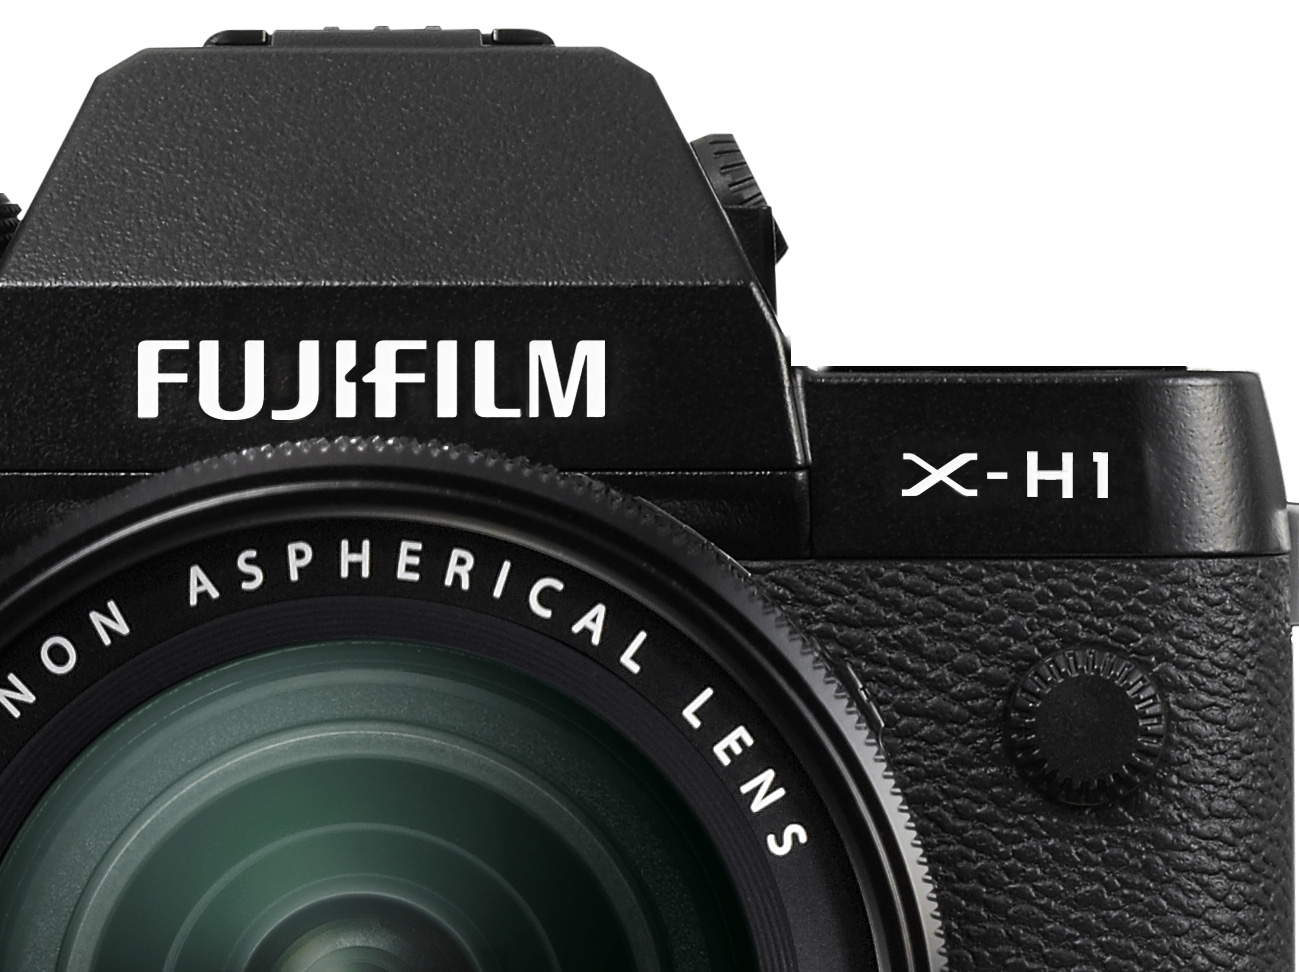 Fujifilm X-H1 - especially exciting for filmmakers?